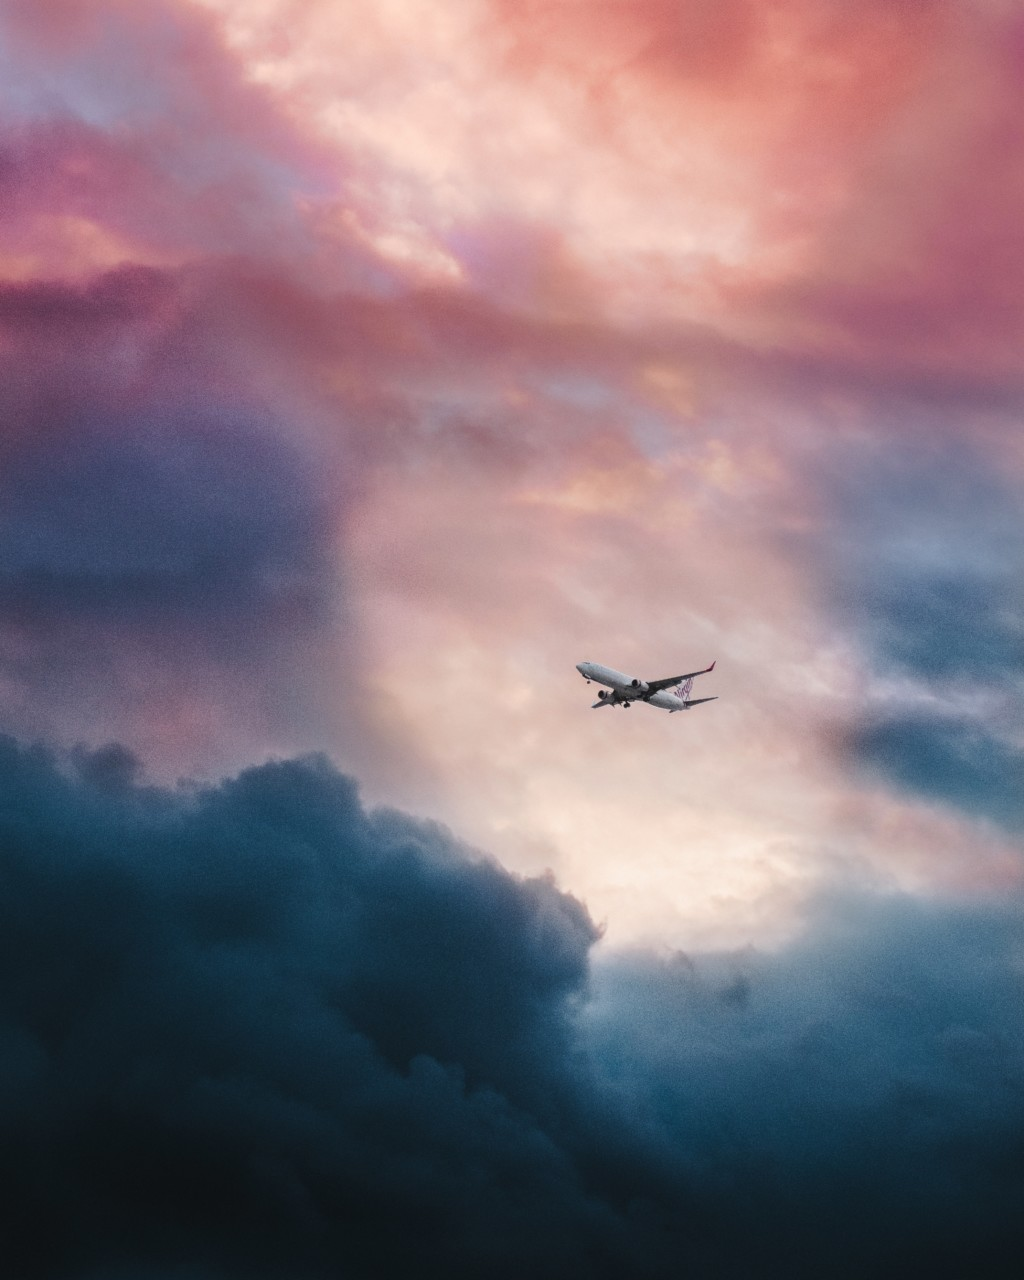 fly-rosa-himmel-leio-mclaren-unsplash-green-house